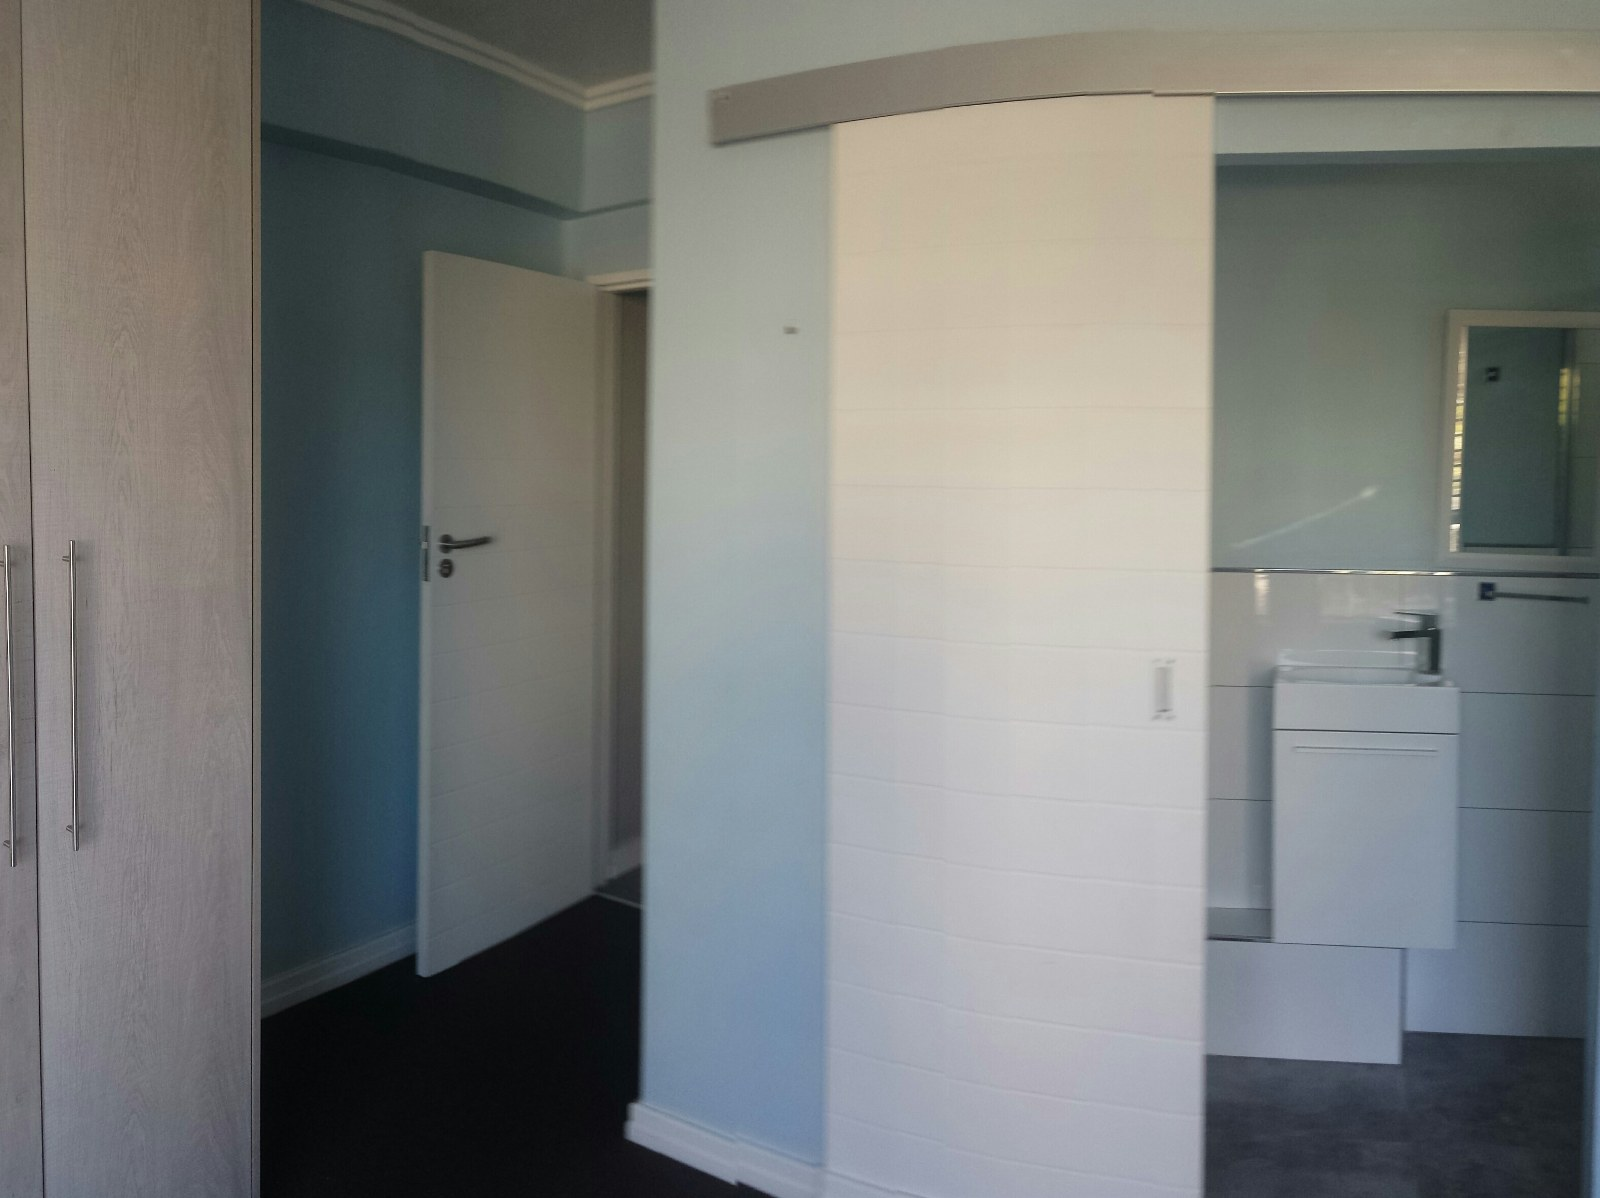 3 Bedroom Apartment for sale in Sea Point ENT0067155 : photo#8